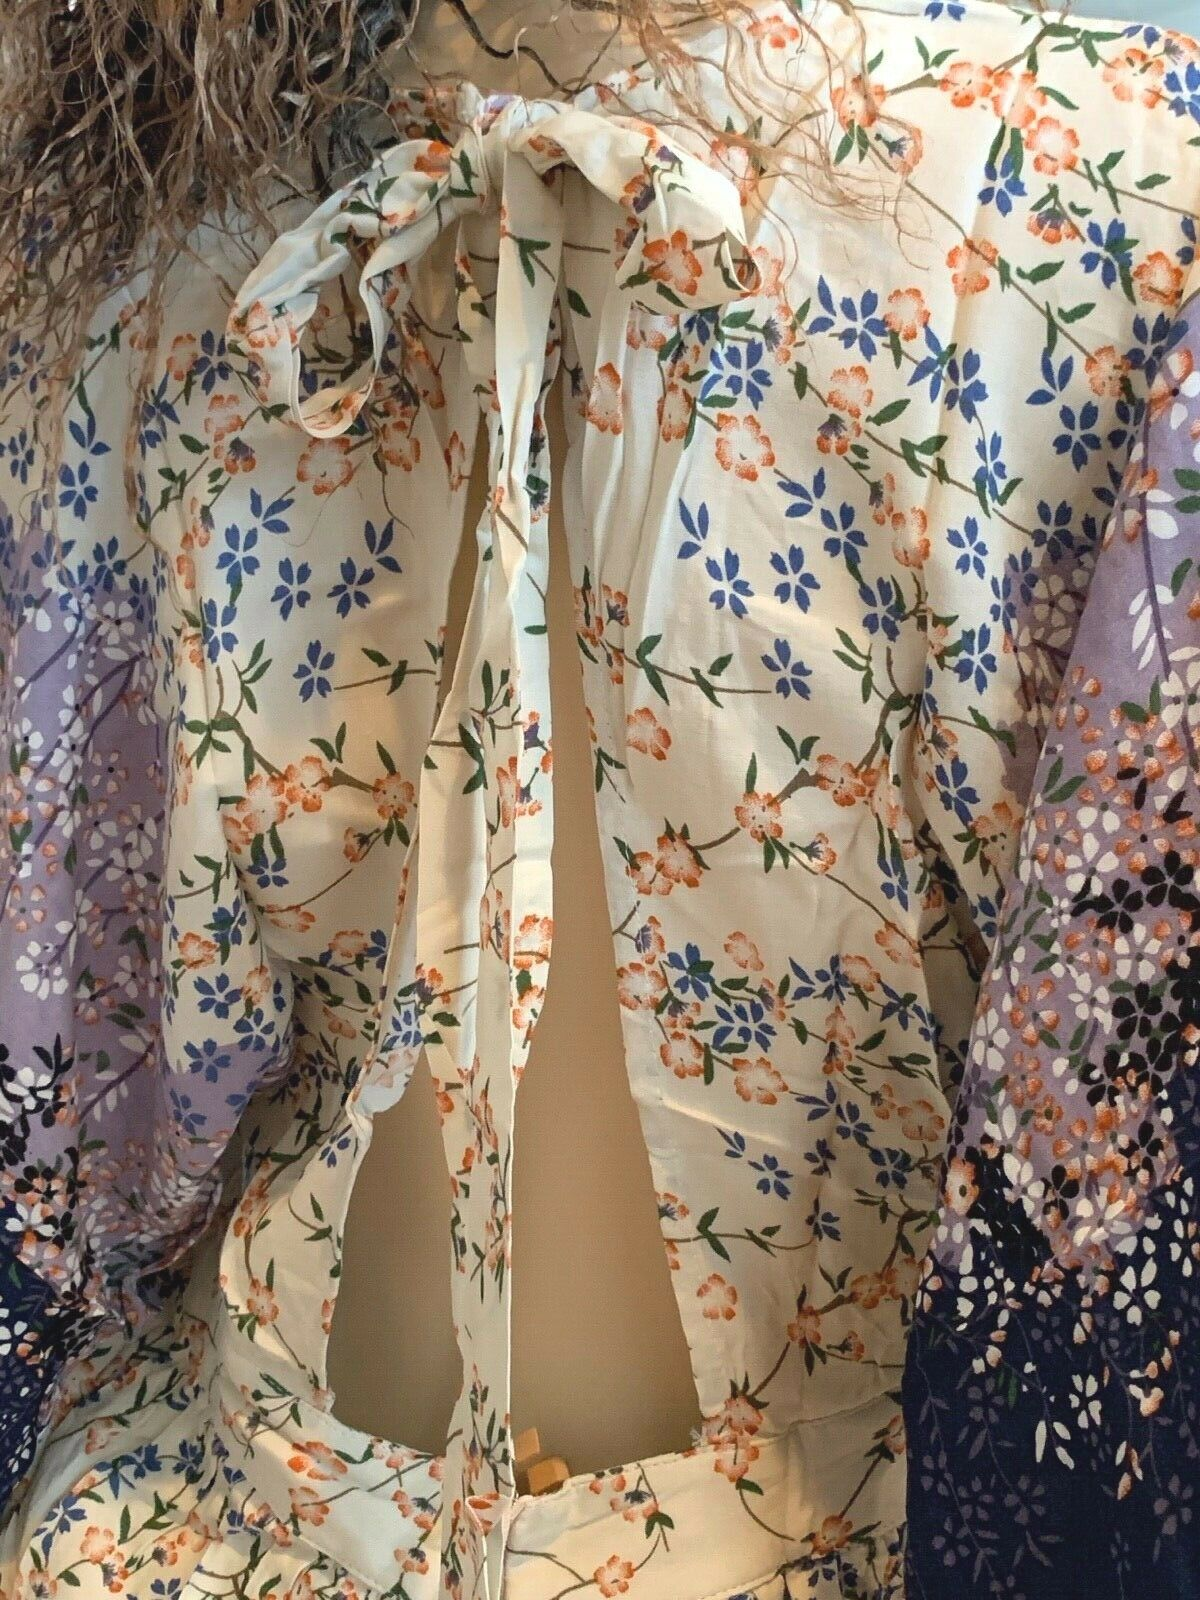 Image 3 of Dainty Floral Ivory Cream and Purple Romantic Maxi Dress S M or L, Lola's